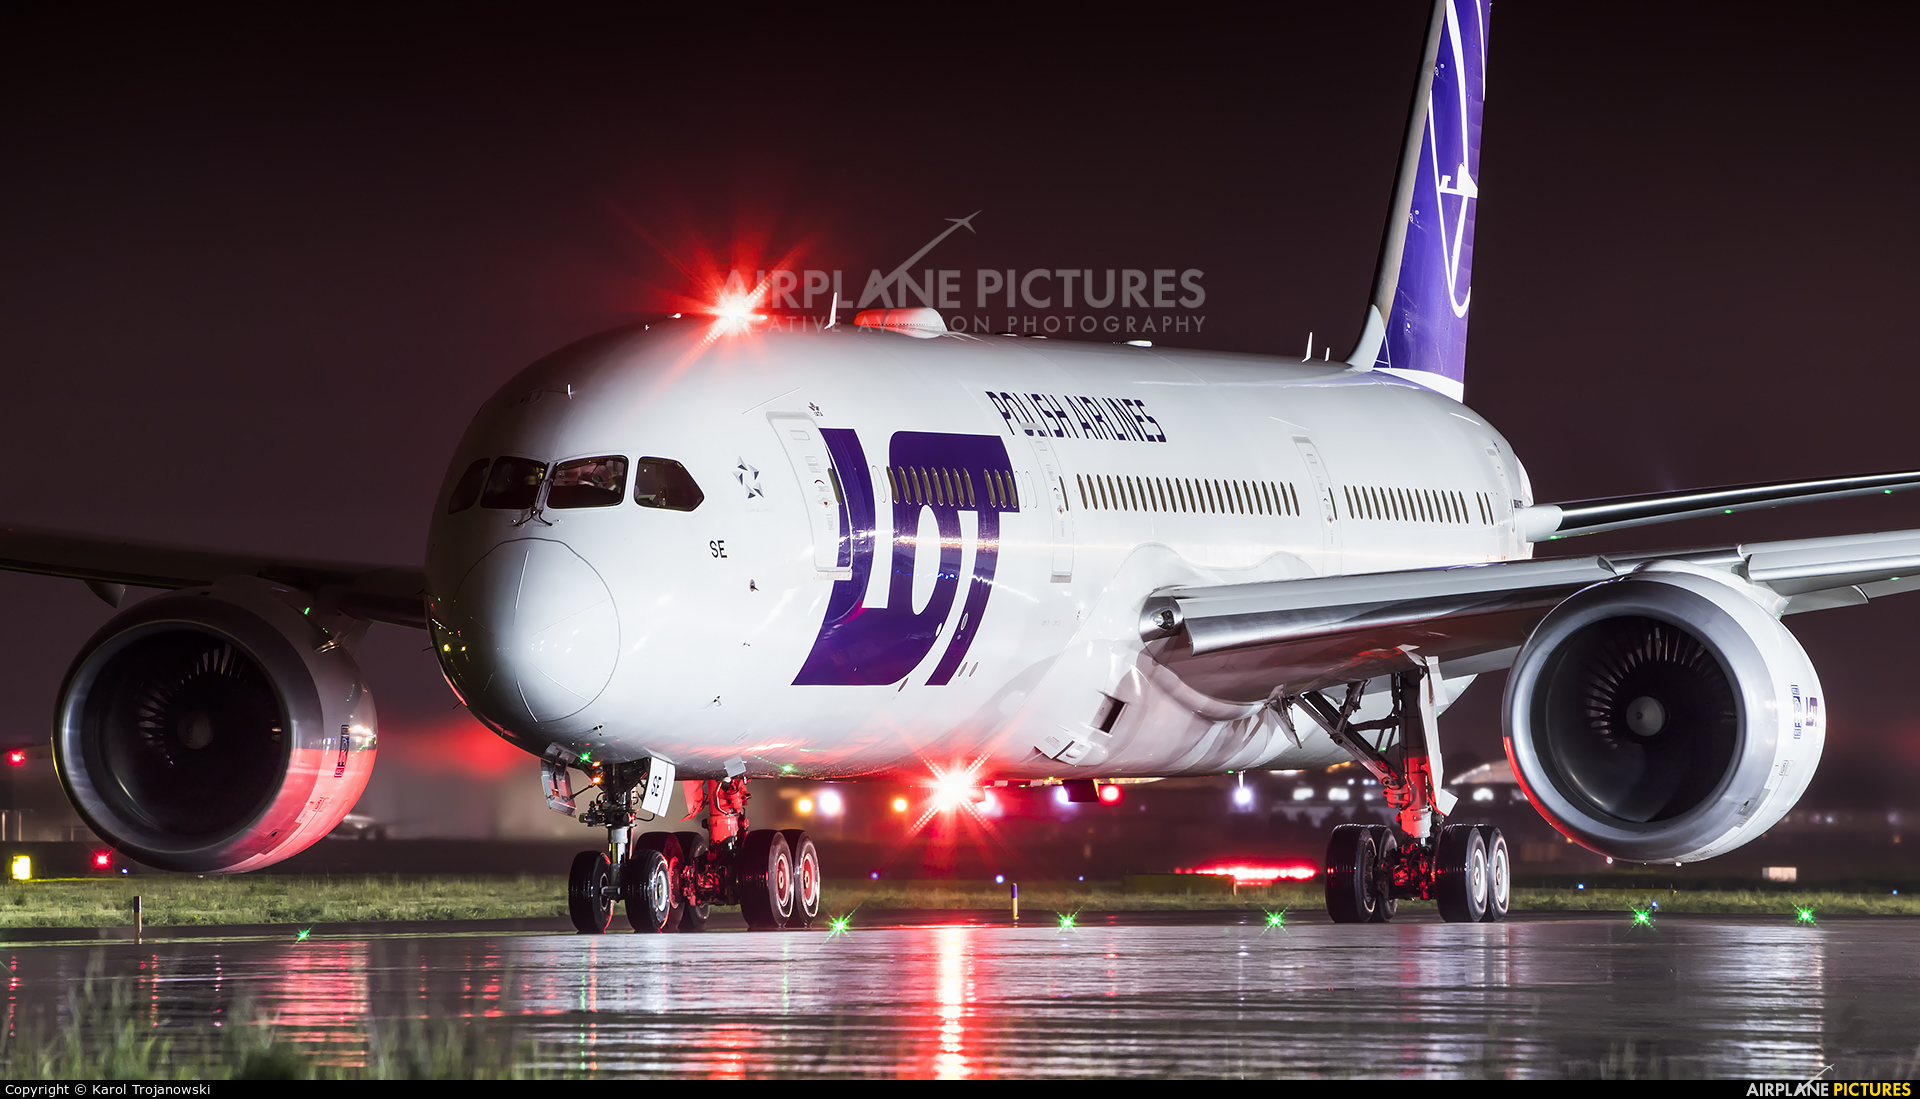 LOT - Polish Airlines SP-LSE aircraft at Warsaw - Frederic Chopin